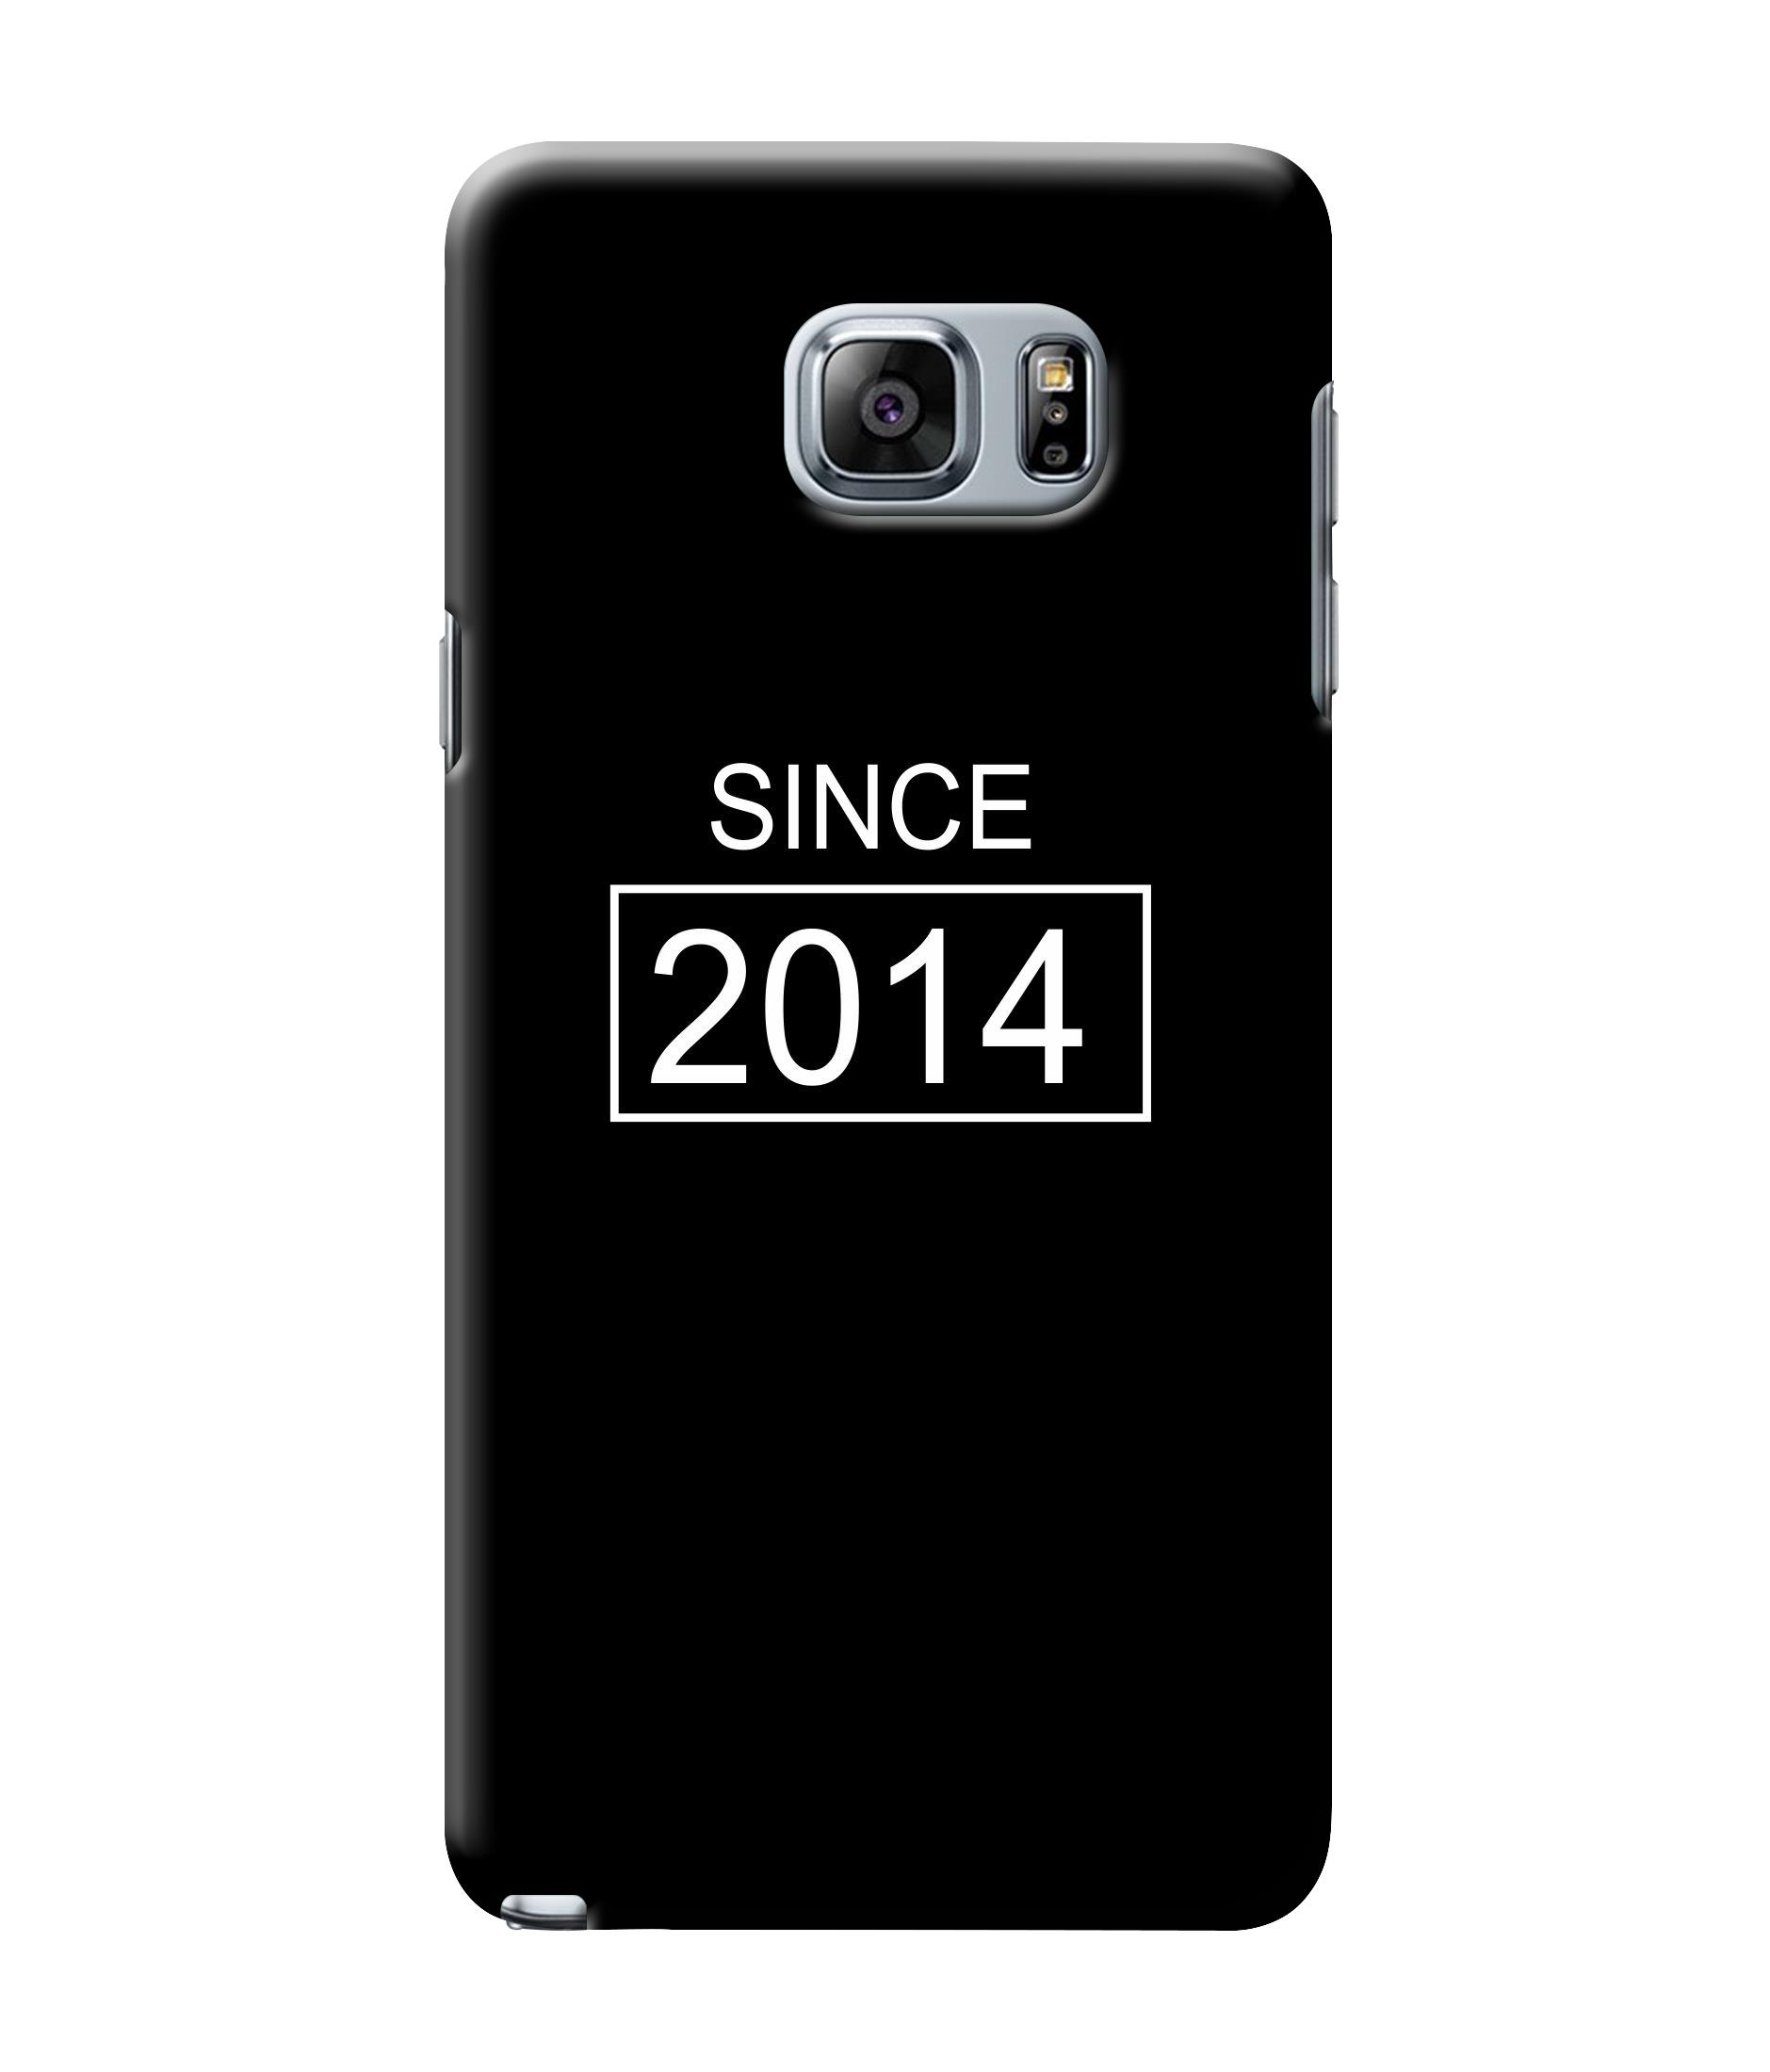 caseophile2 Samsung Galaxy Note 5 Since 2014 Mobile Case